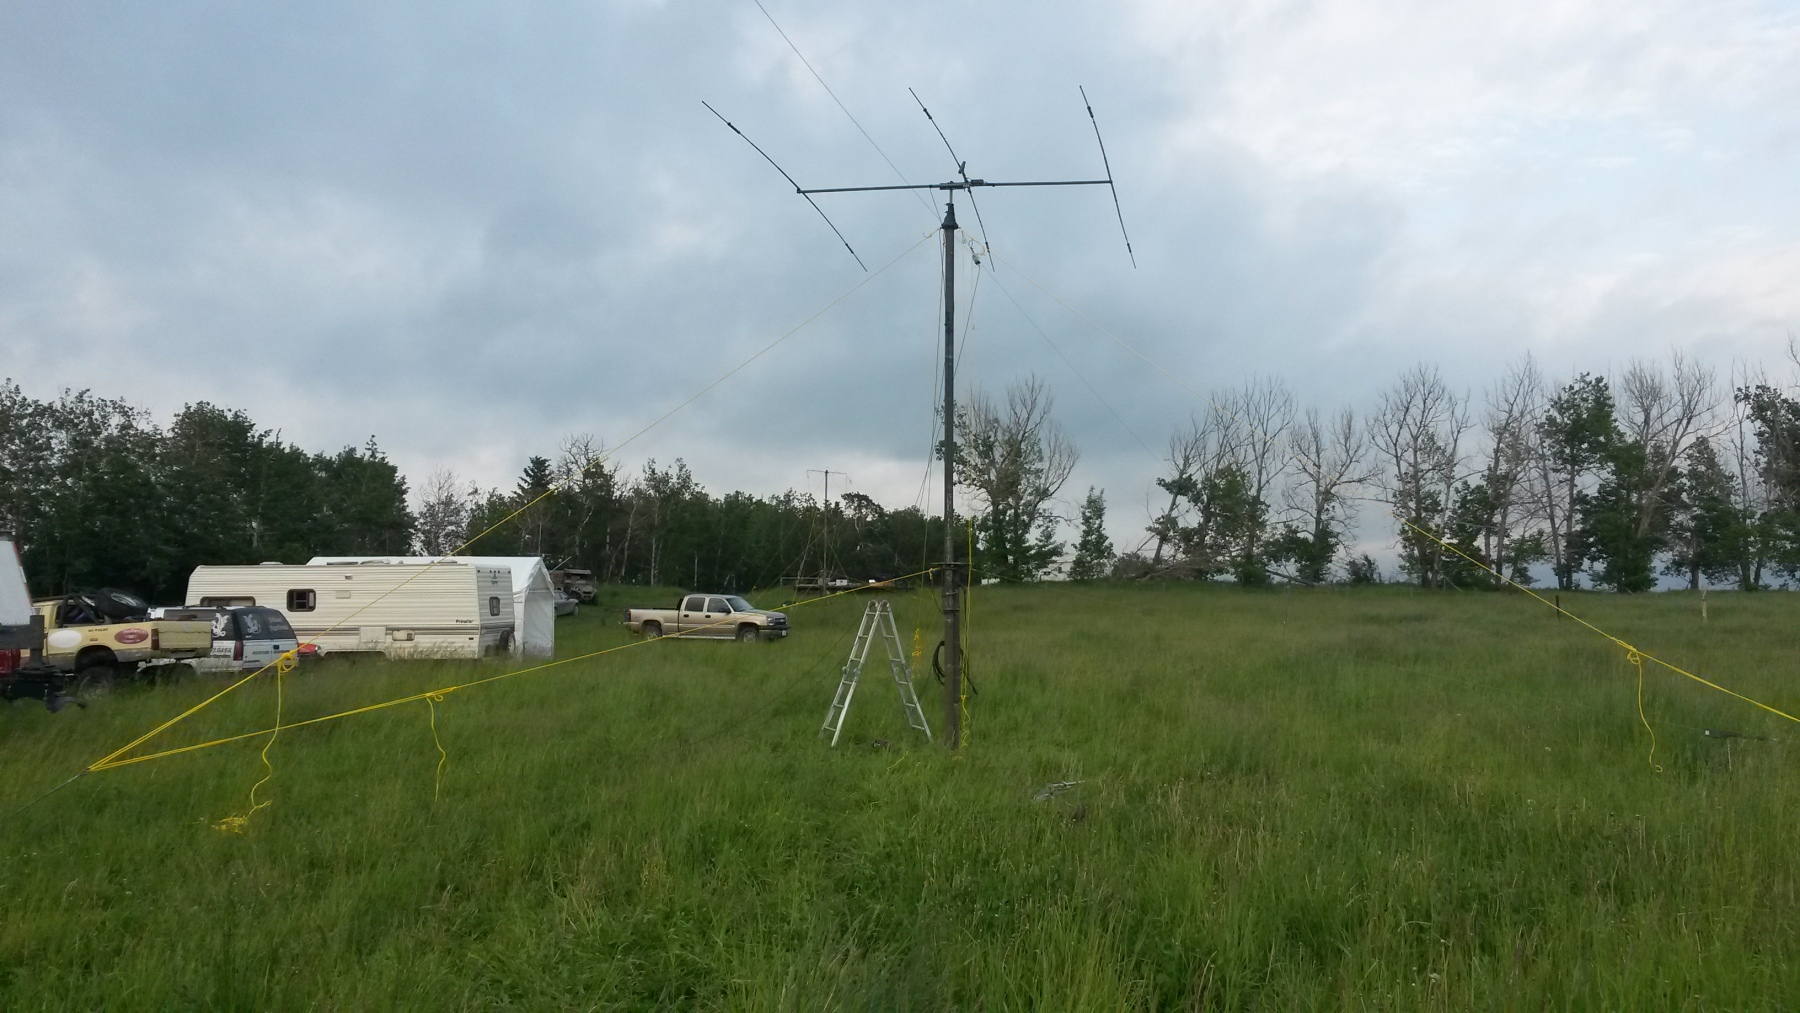 HF tri band beam with Off Center Dipole from VE6DDD